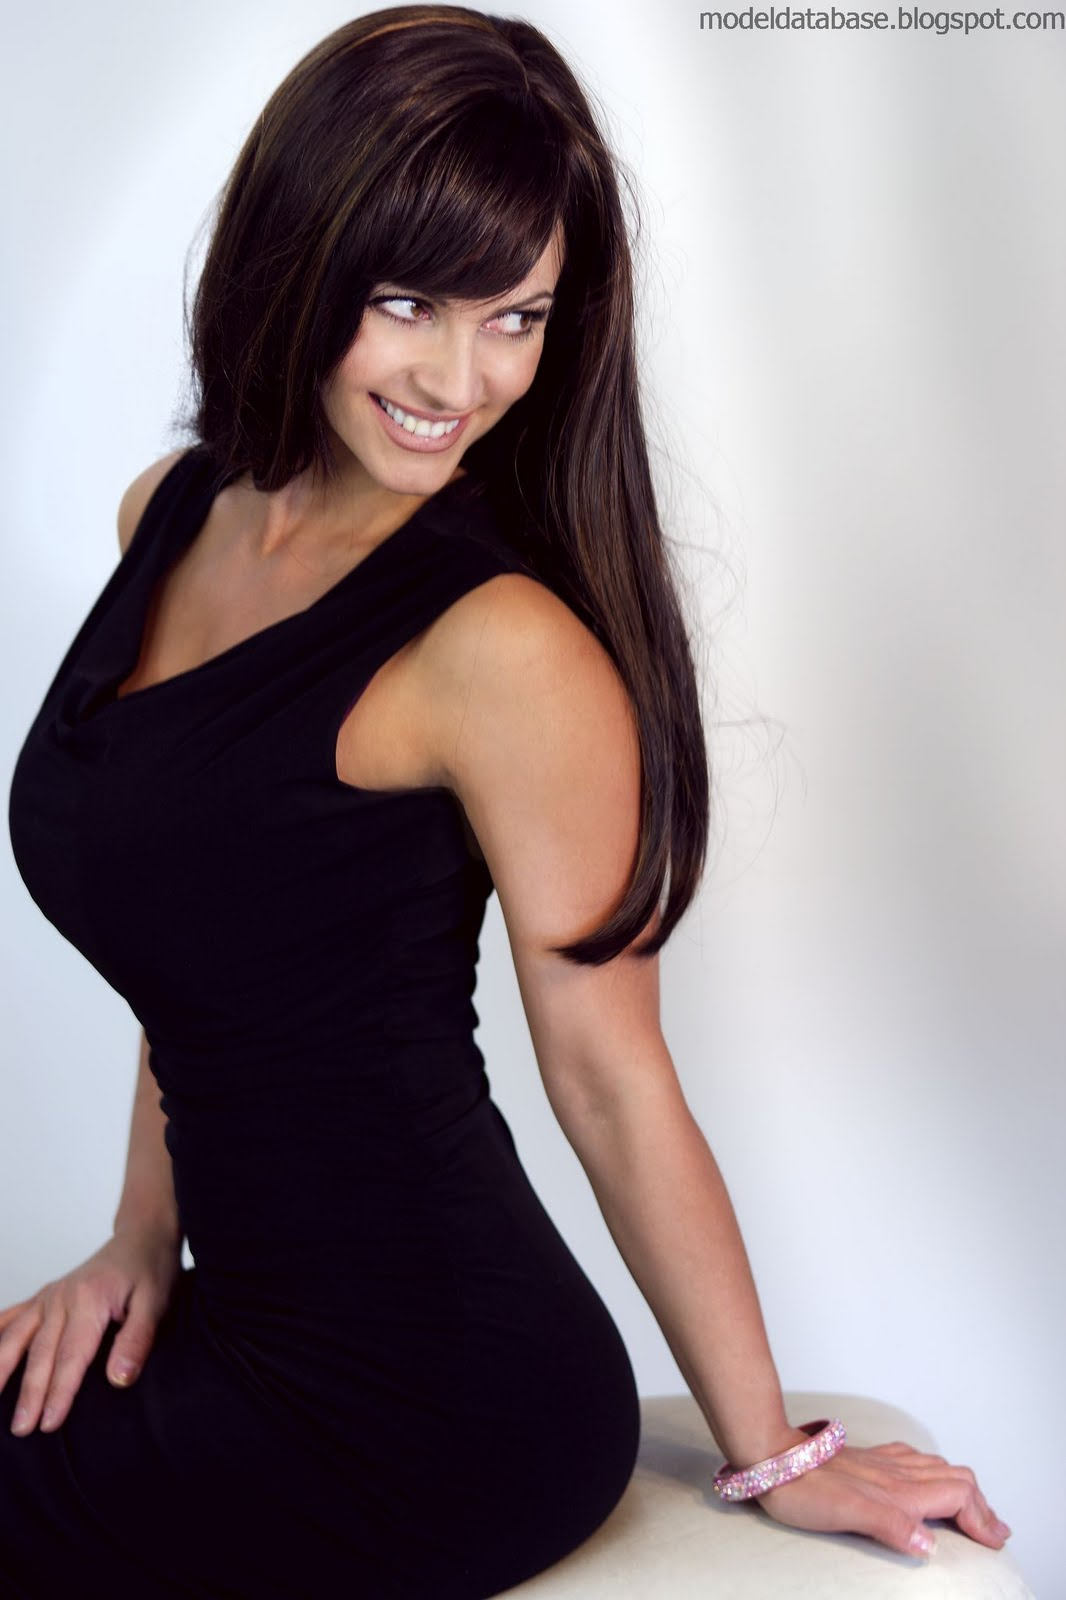 denise milani in a dress - photo #19